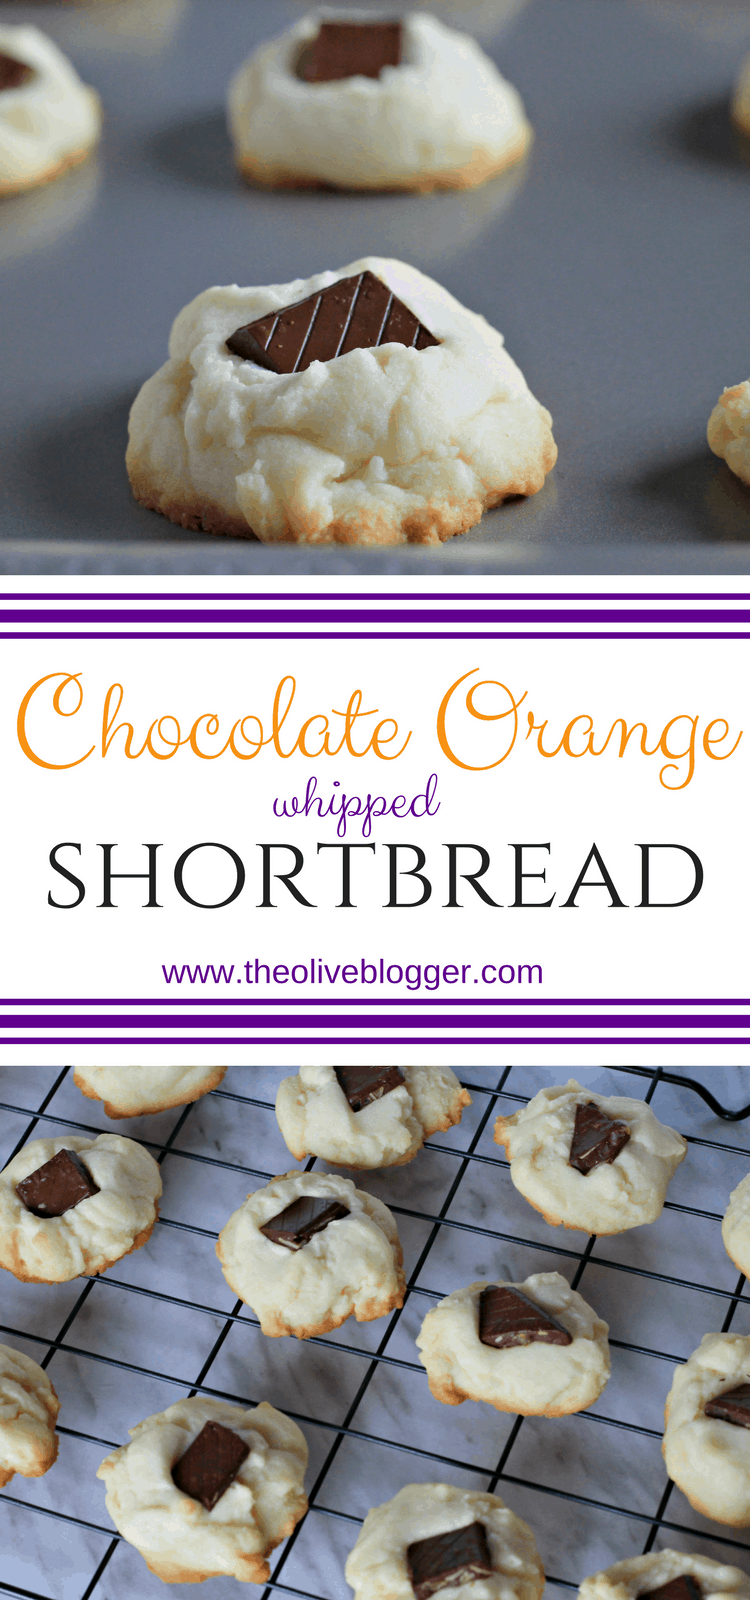 This shortbread cookie melts in your mouth and gives way to a subtle orange flavor that is throughout the cookie, perfect for any cookie swap this Holiday! #ChristmasCookies #ShortbreadCookies #CookieSwap #Shortbread